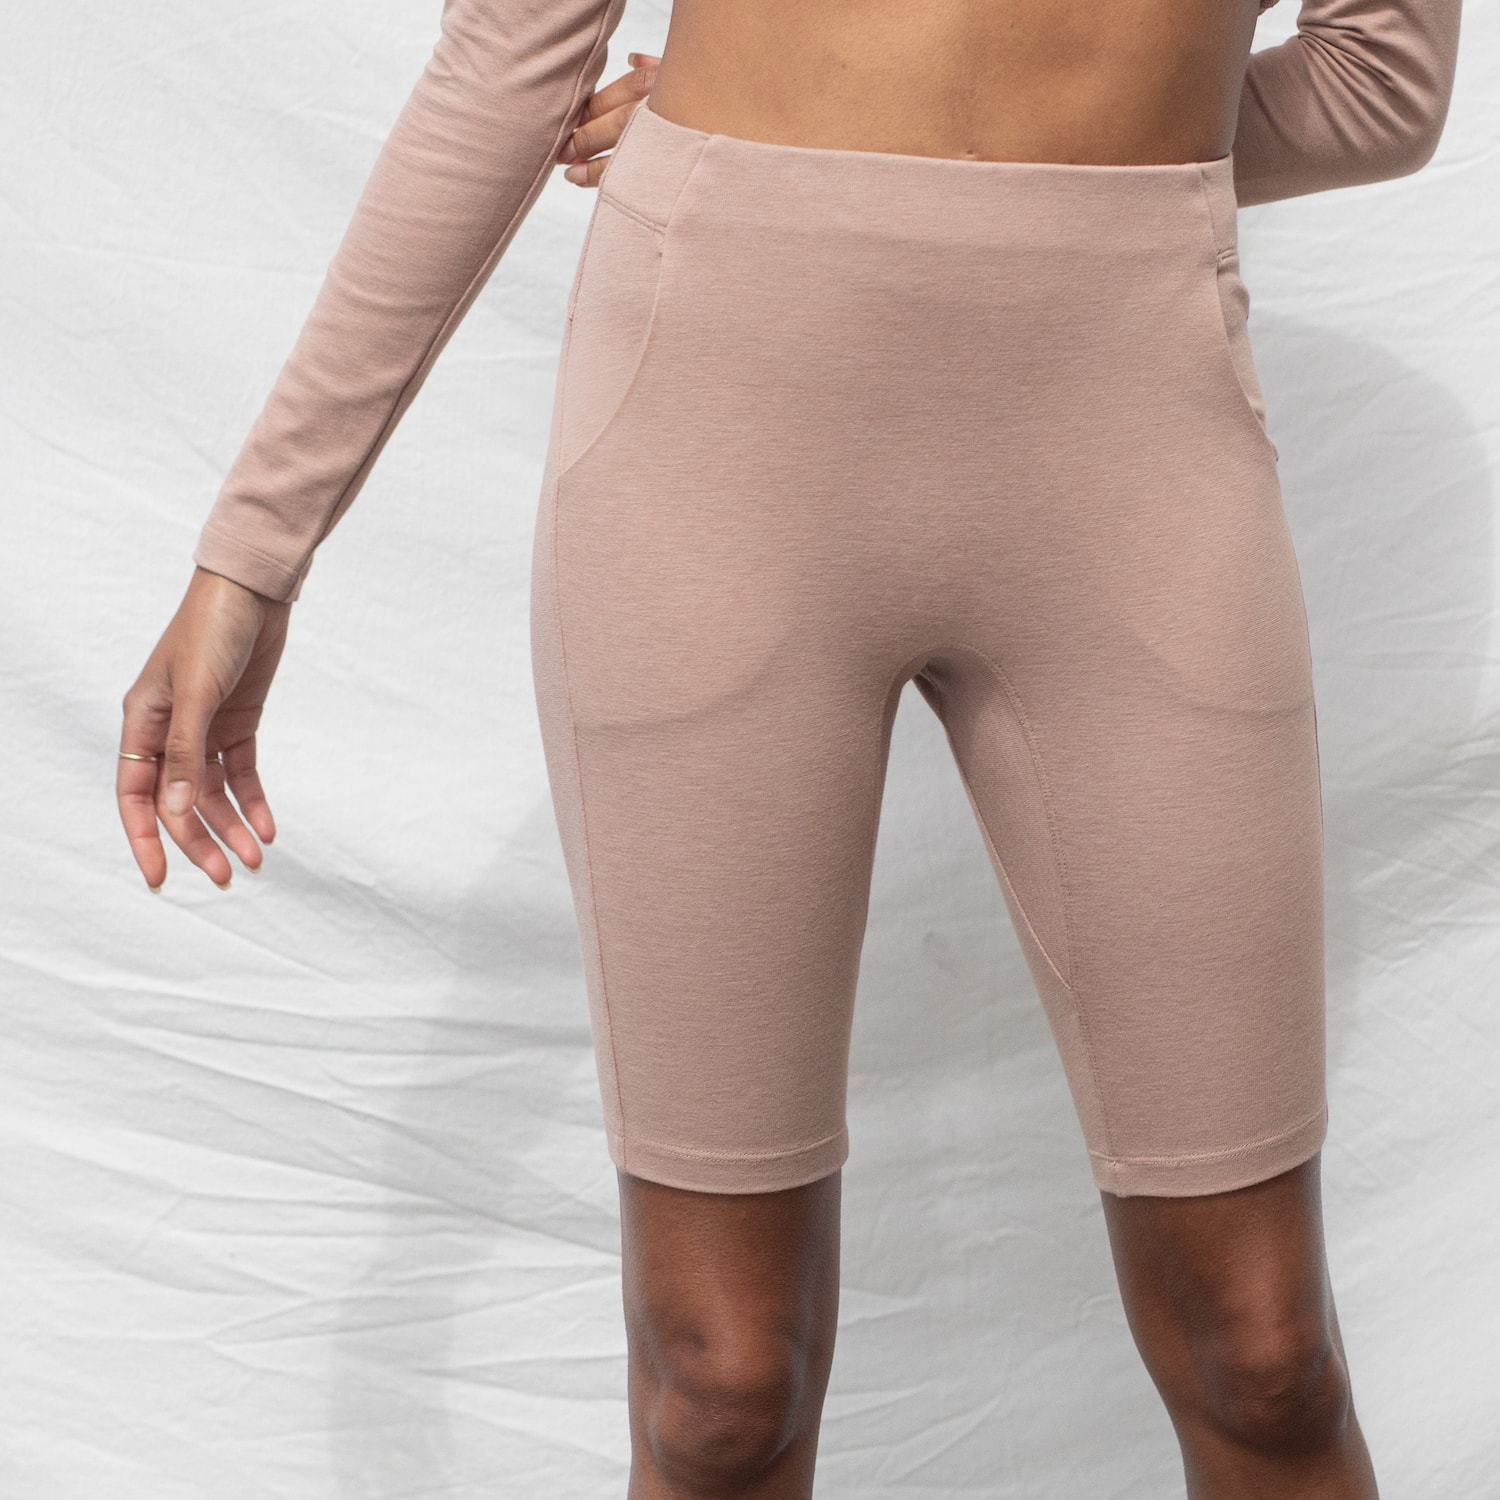 Lunya Sleepwear Restore Bike Short - #Bare/Otium Tan